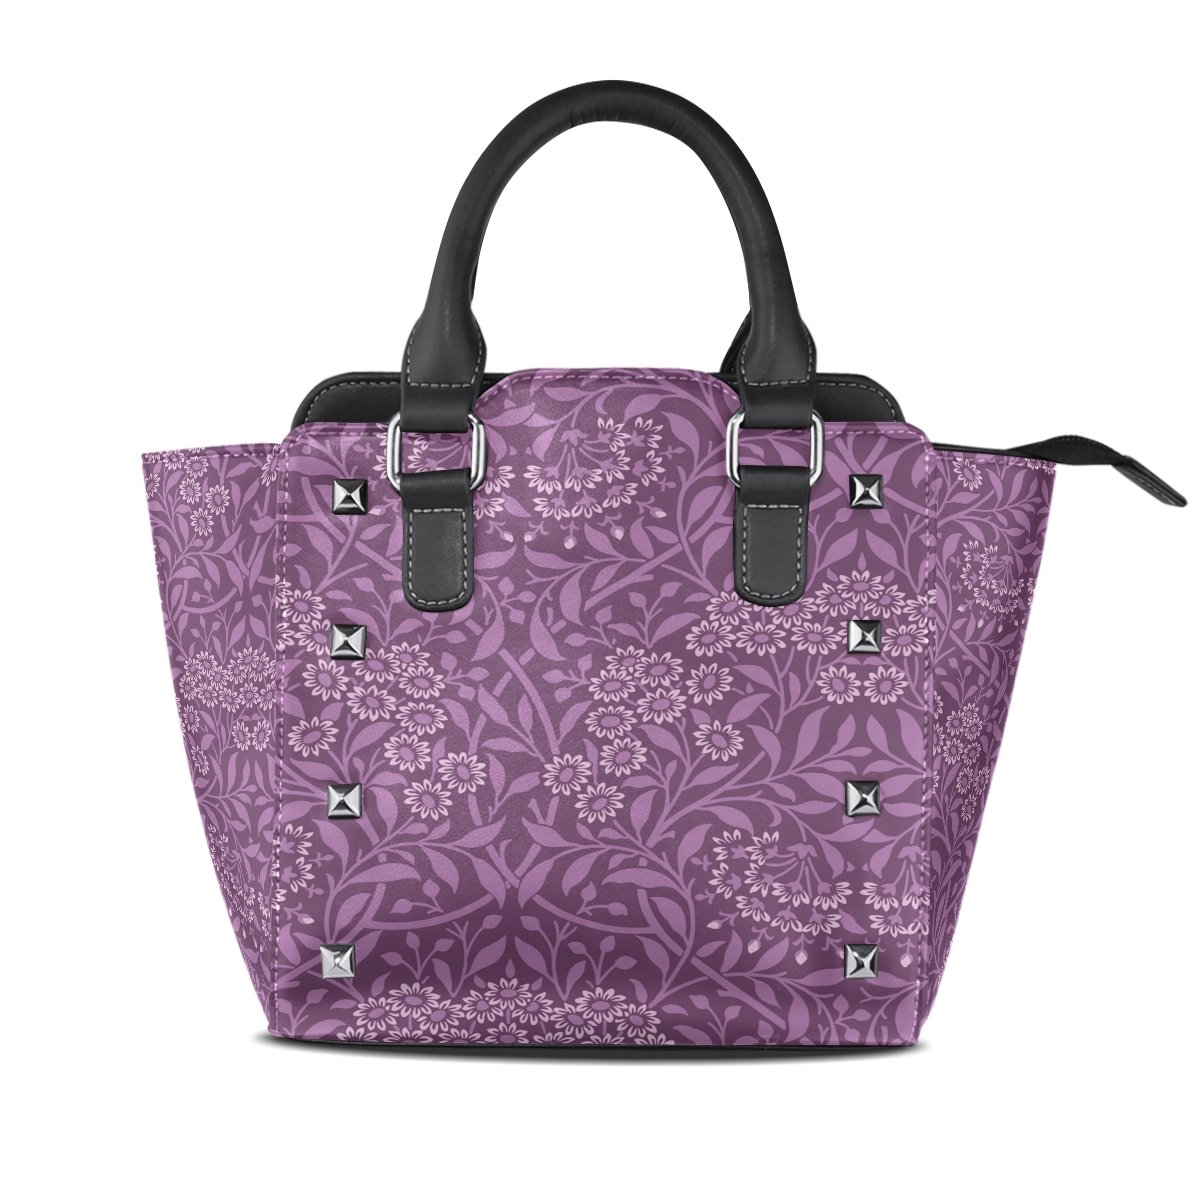 Womens Genuine Leather Hangbags Tote Bags Purple Flowers Purse Shoulder Bags